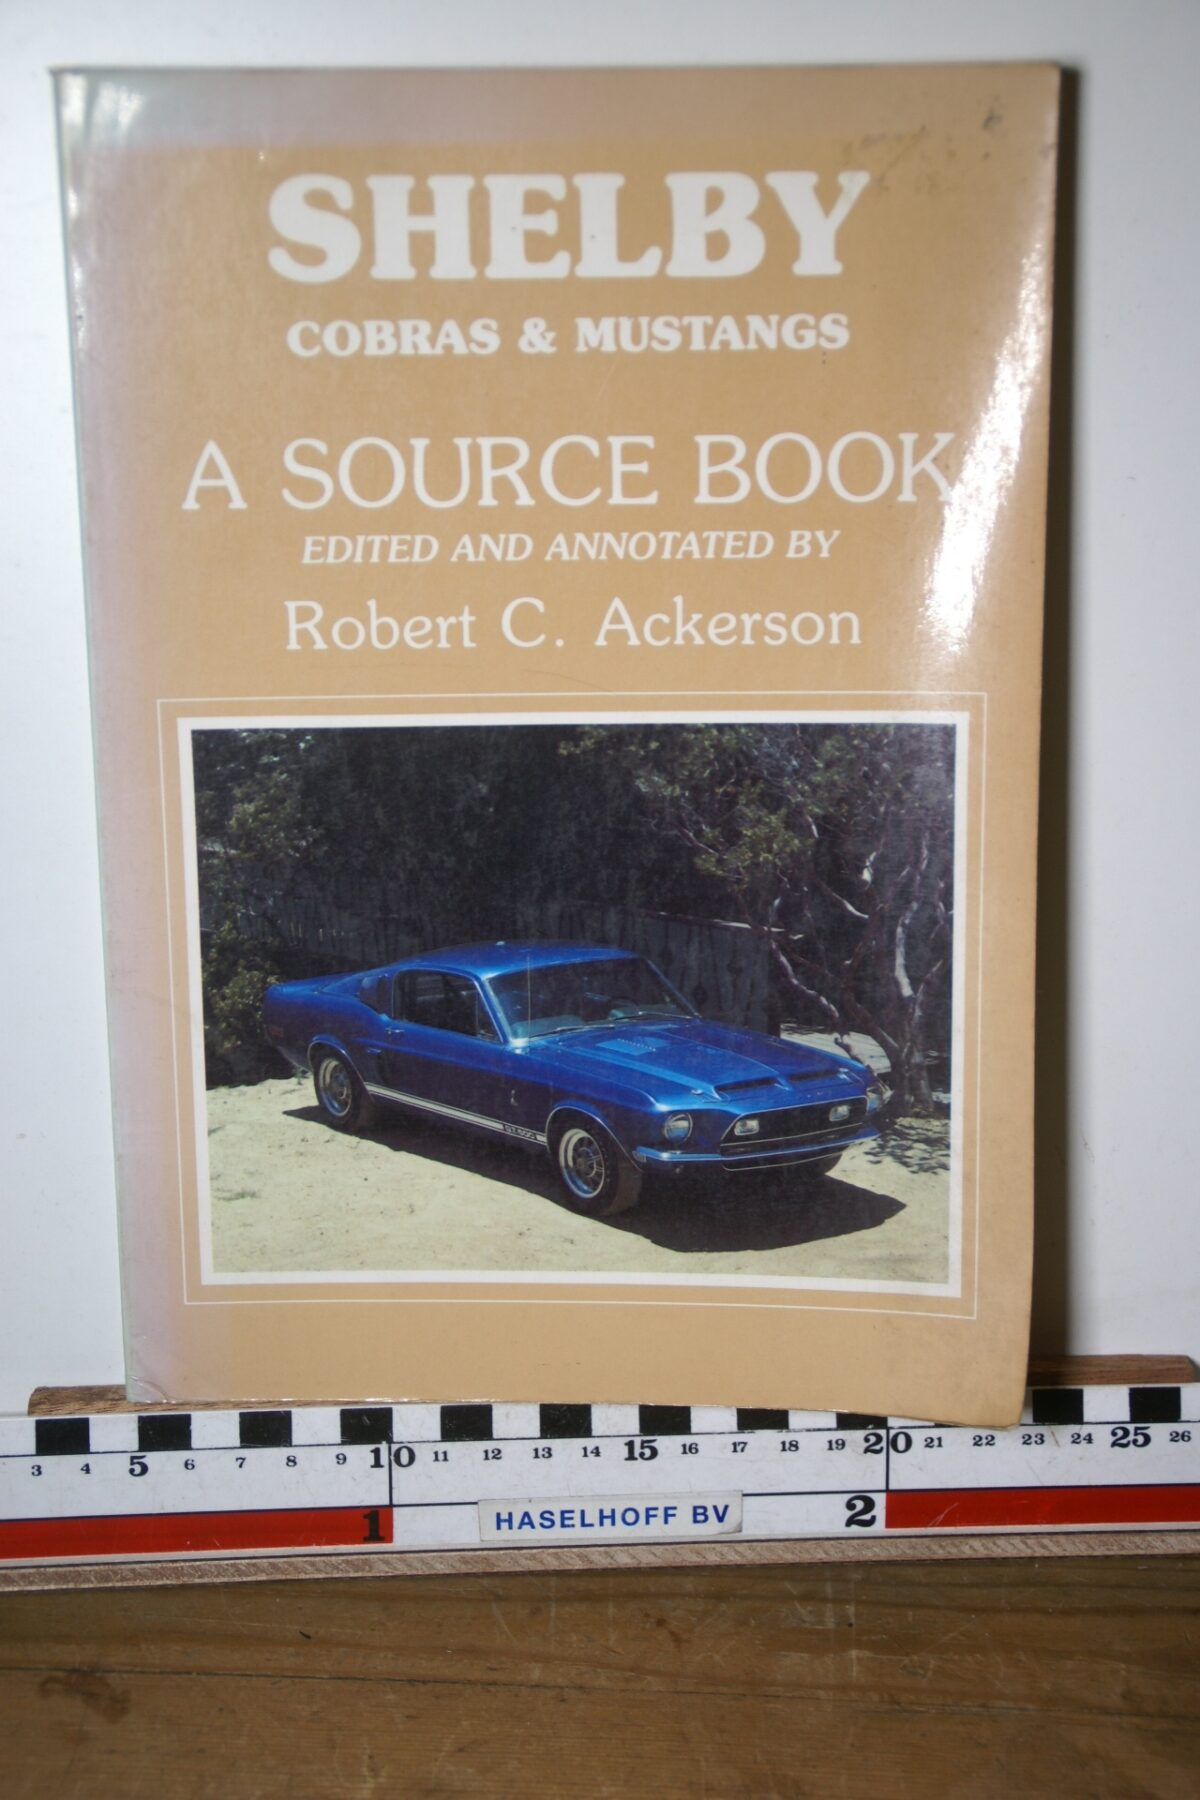 Robert Ackerson Shelby Cobras & Mustangs 180205-3698-0